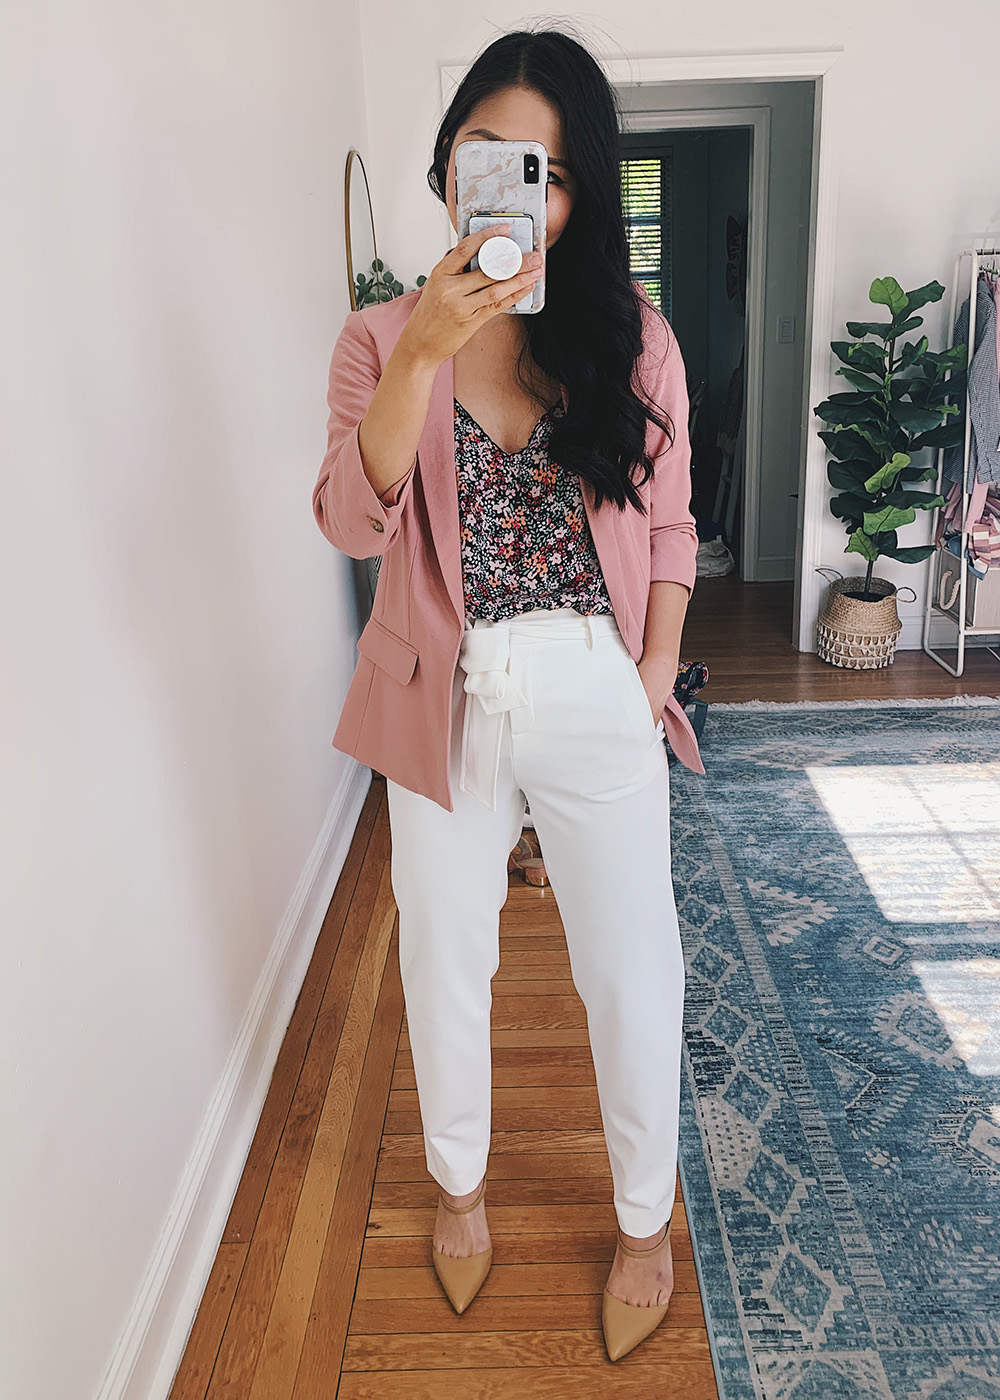 Colorful Work Outfit for Women: Pink Blazer, Floral Cami, White Slacks, Nude Pumps